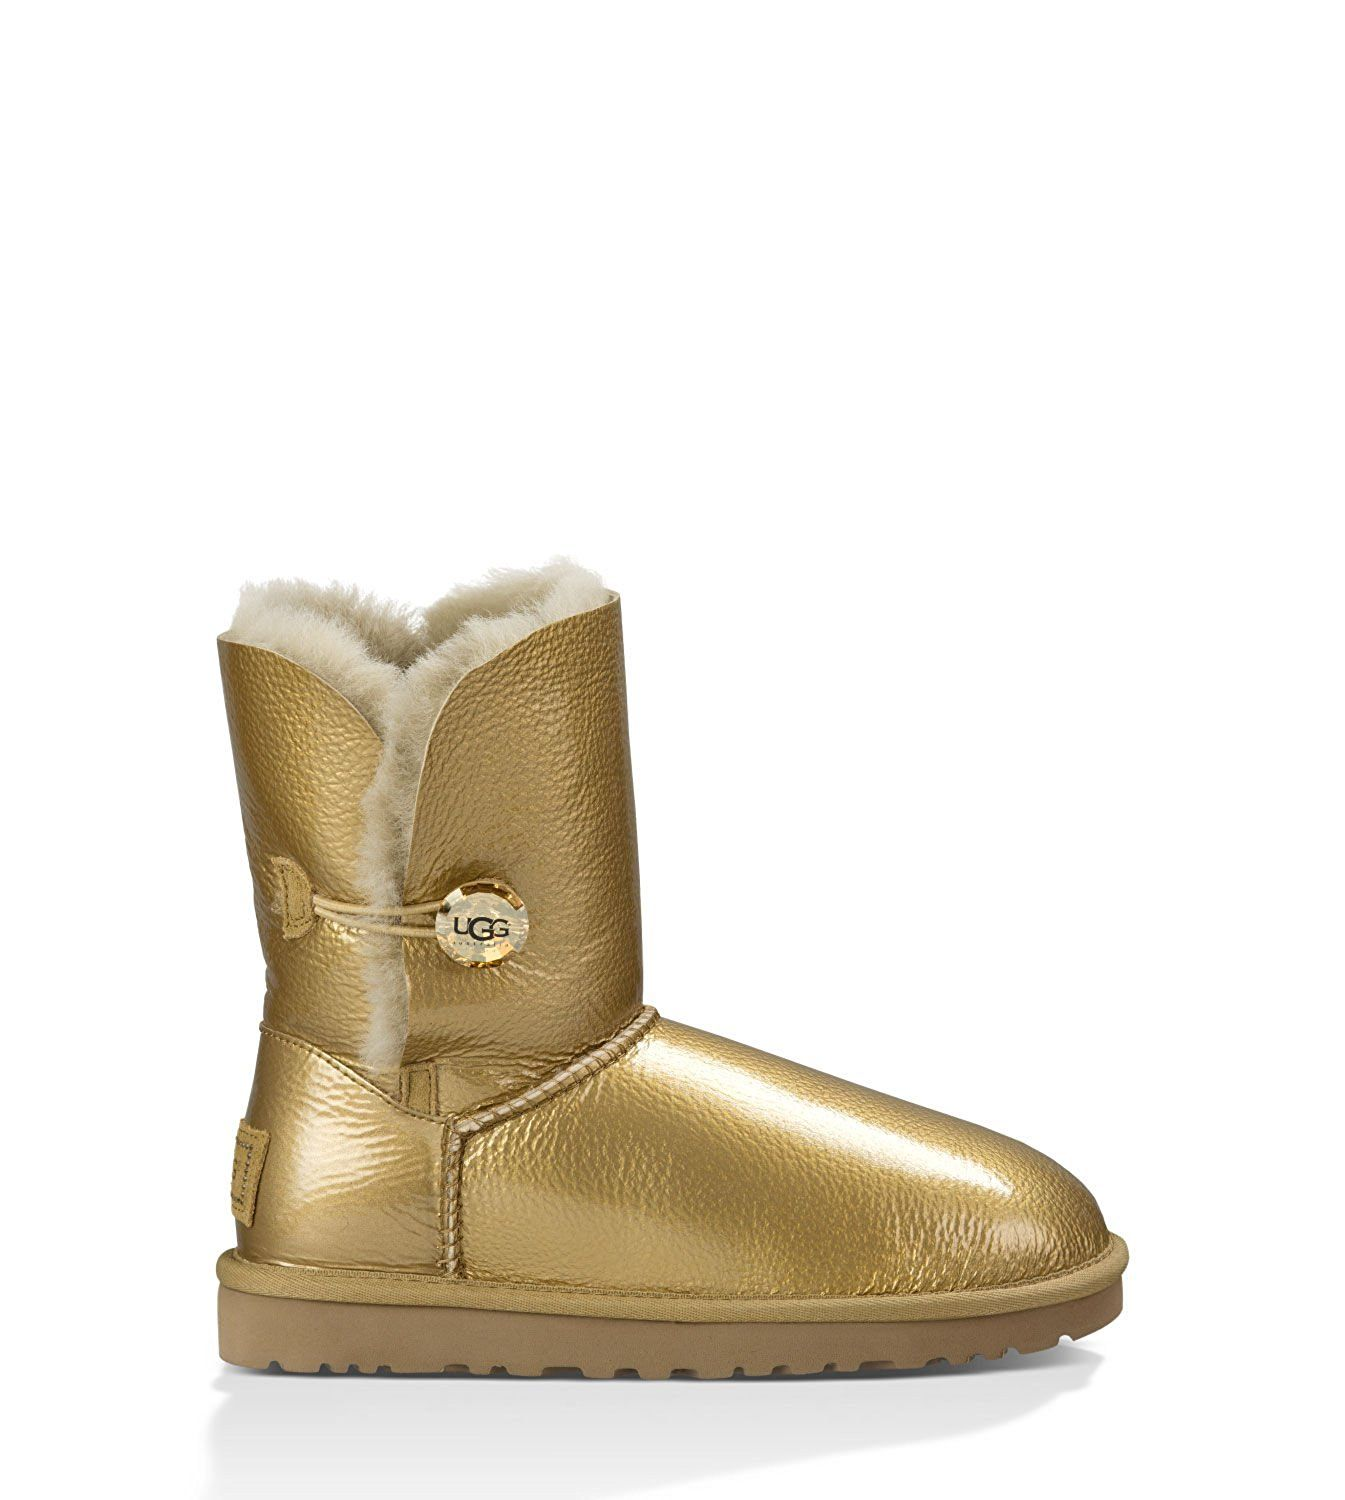 UGG Women's Bailey Button Mirage Soft Gold Twinface Boot